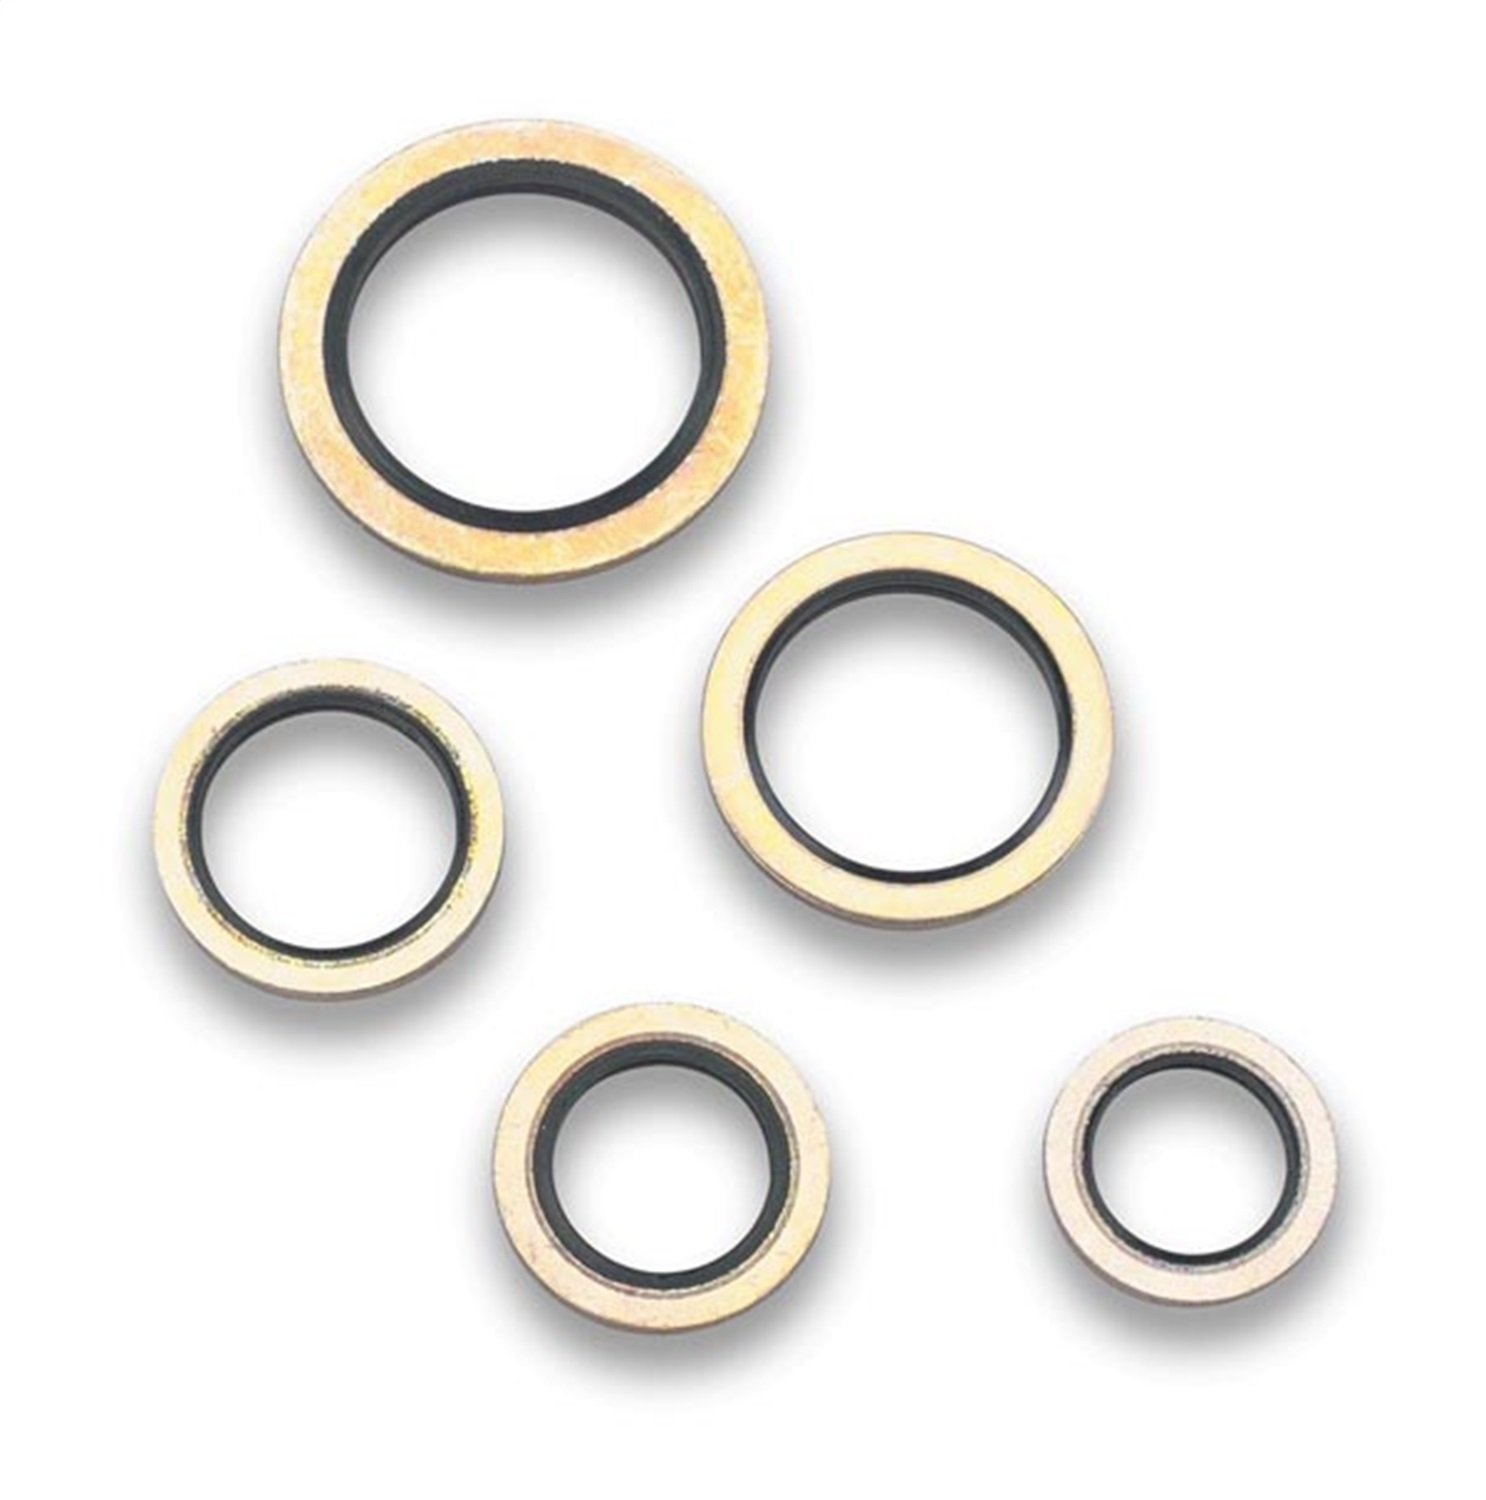 Earls 178105ERL Dowty Seal 5//16 O-Ring, Pack of 2